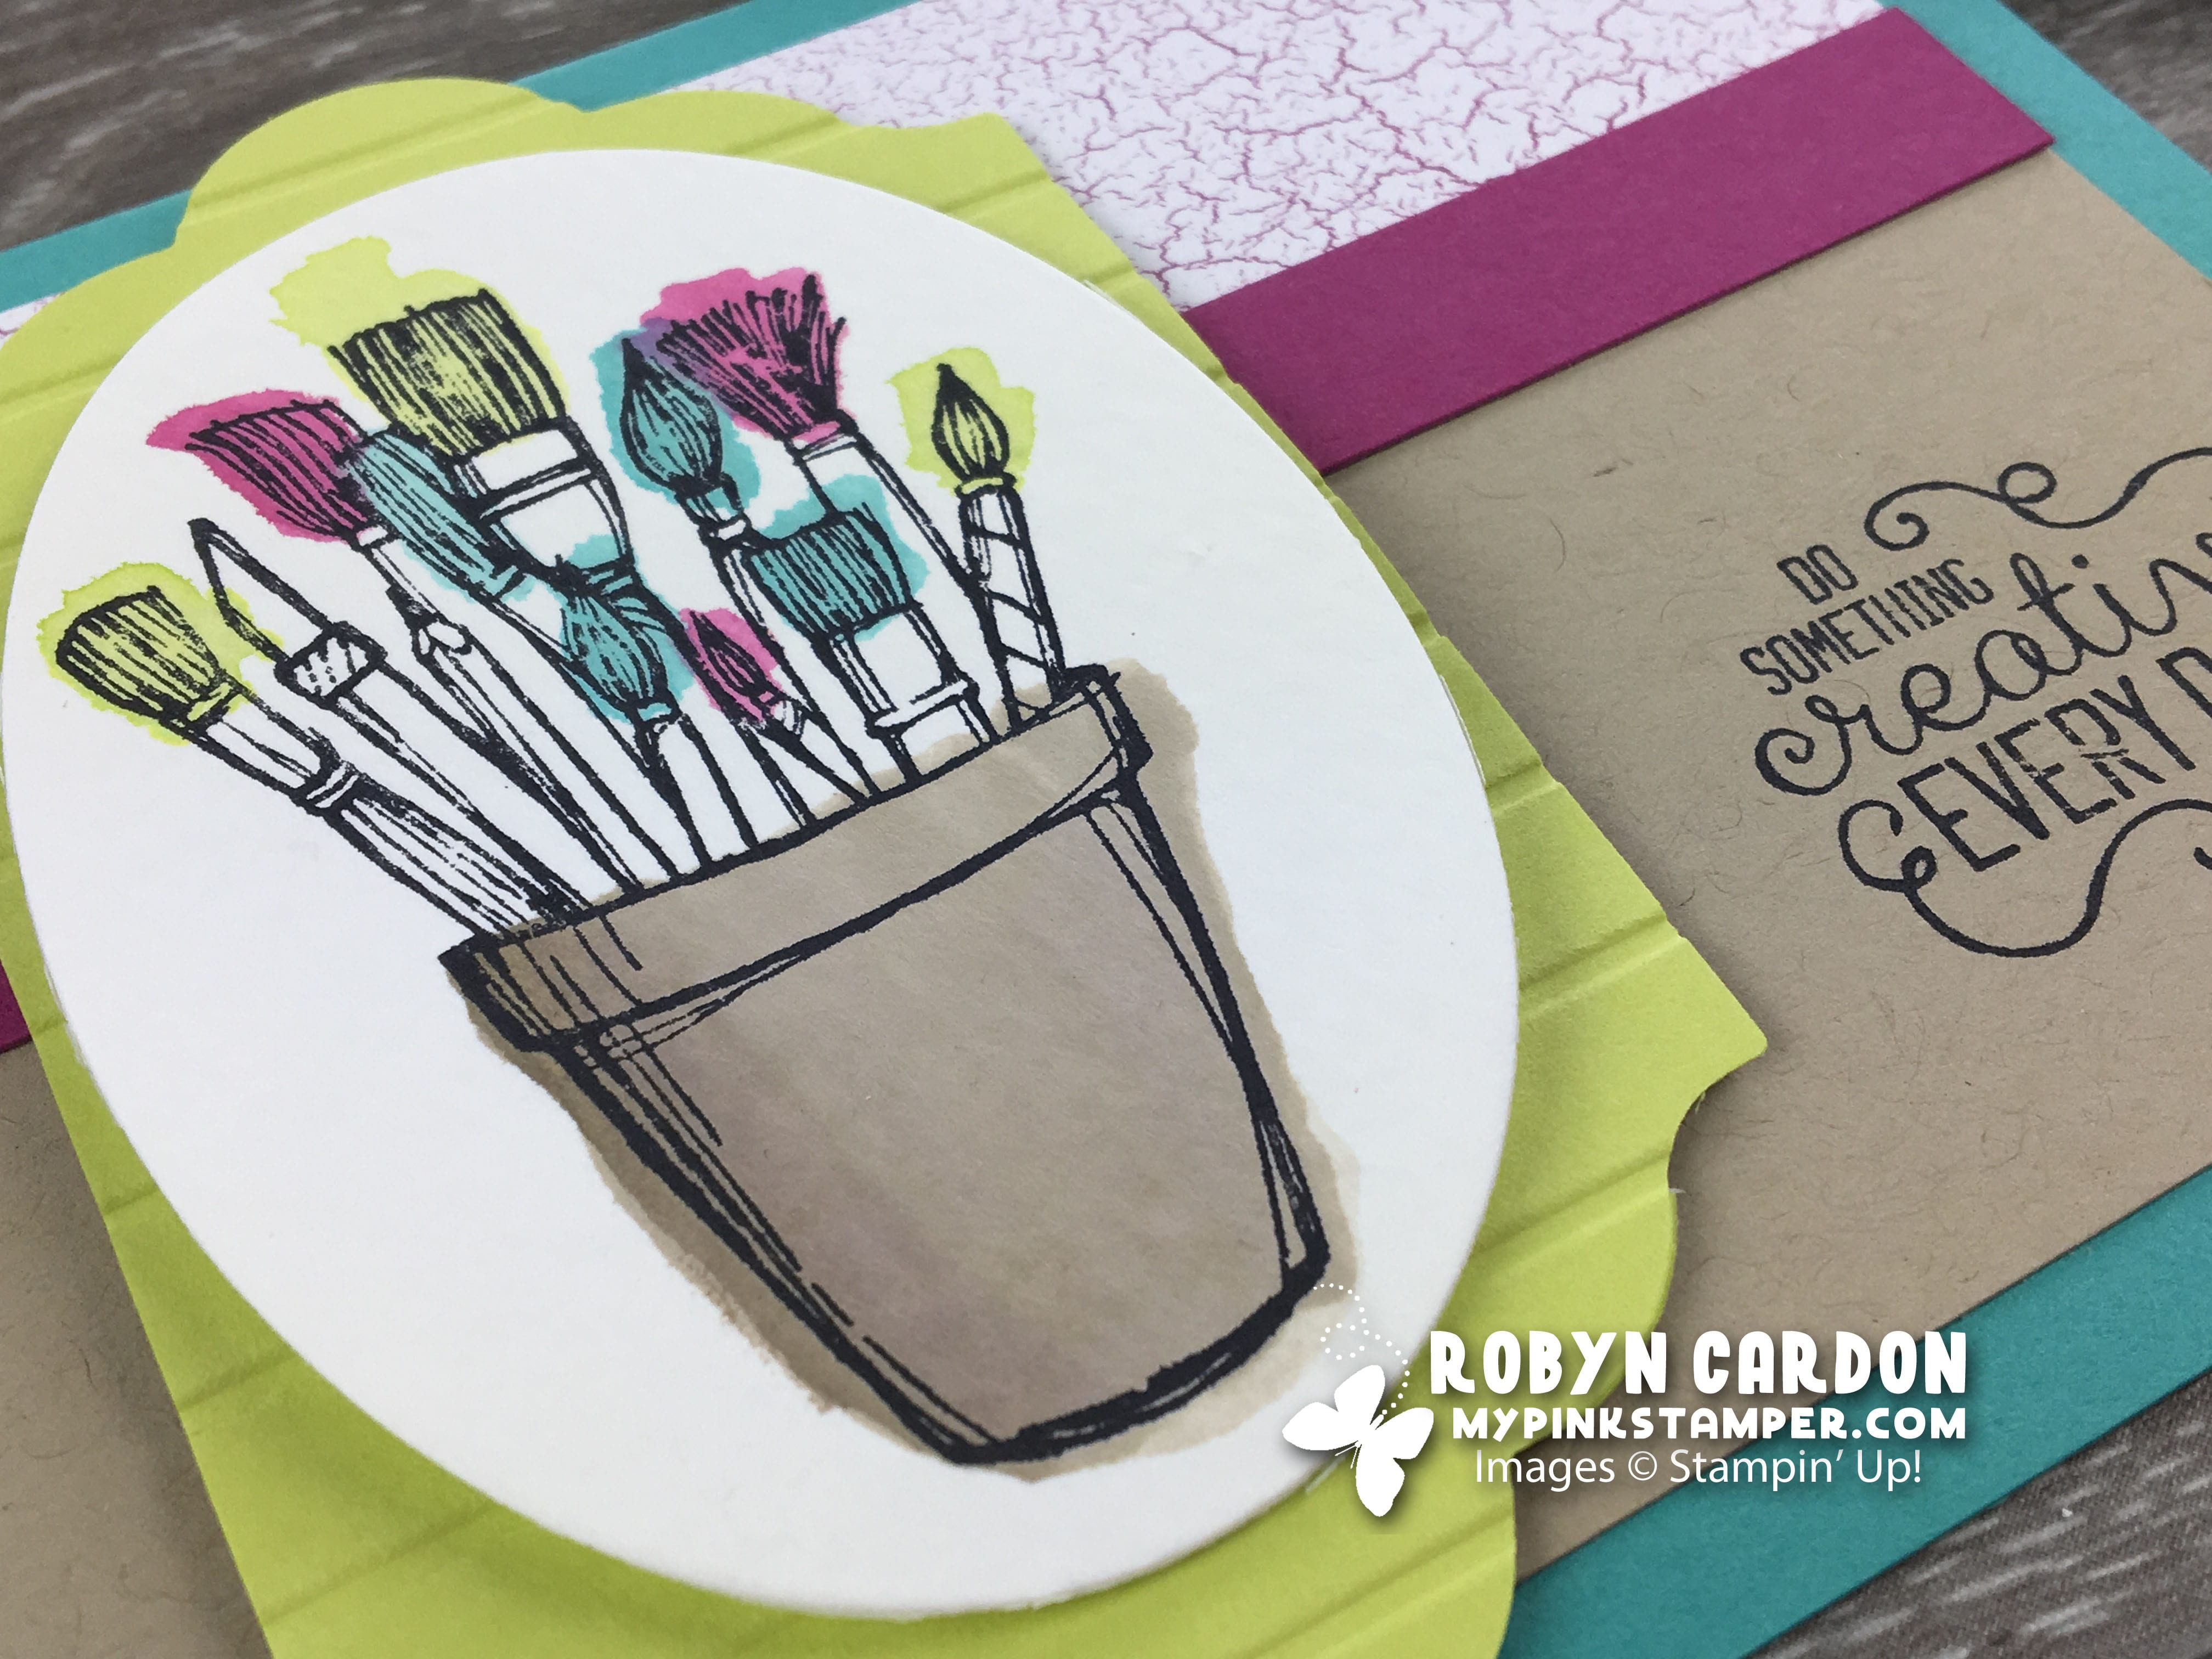 NEW VIDEO – Stampin' Up! Crafting Forever with Watercolor!